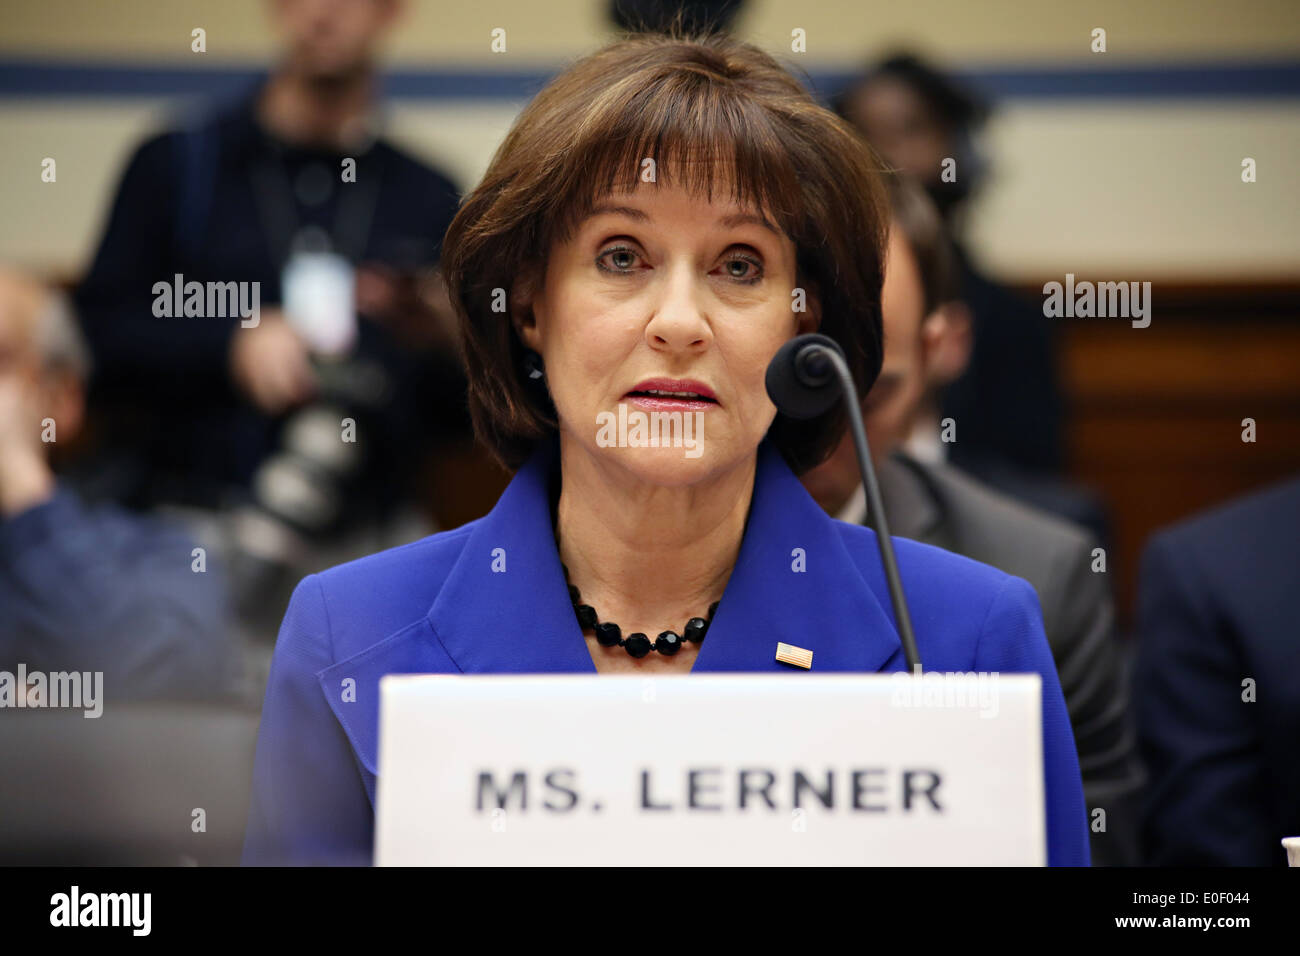 Former Director of the IRS Exempt Organizations division Lois Lerner testifies at the House Oversight and Government Reform Committee hearing on the IRS targeting controversy on Capitol Hill March 5, 2014 in Washington, DC. Lerner invoked her Fifth Amendment right against self-incrimination at the hearing. - Stock Image